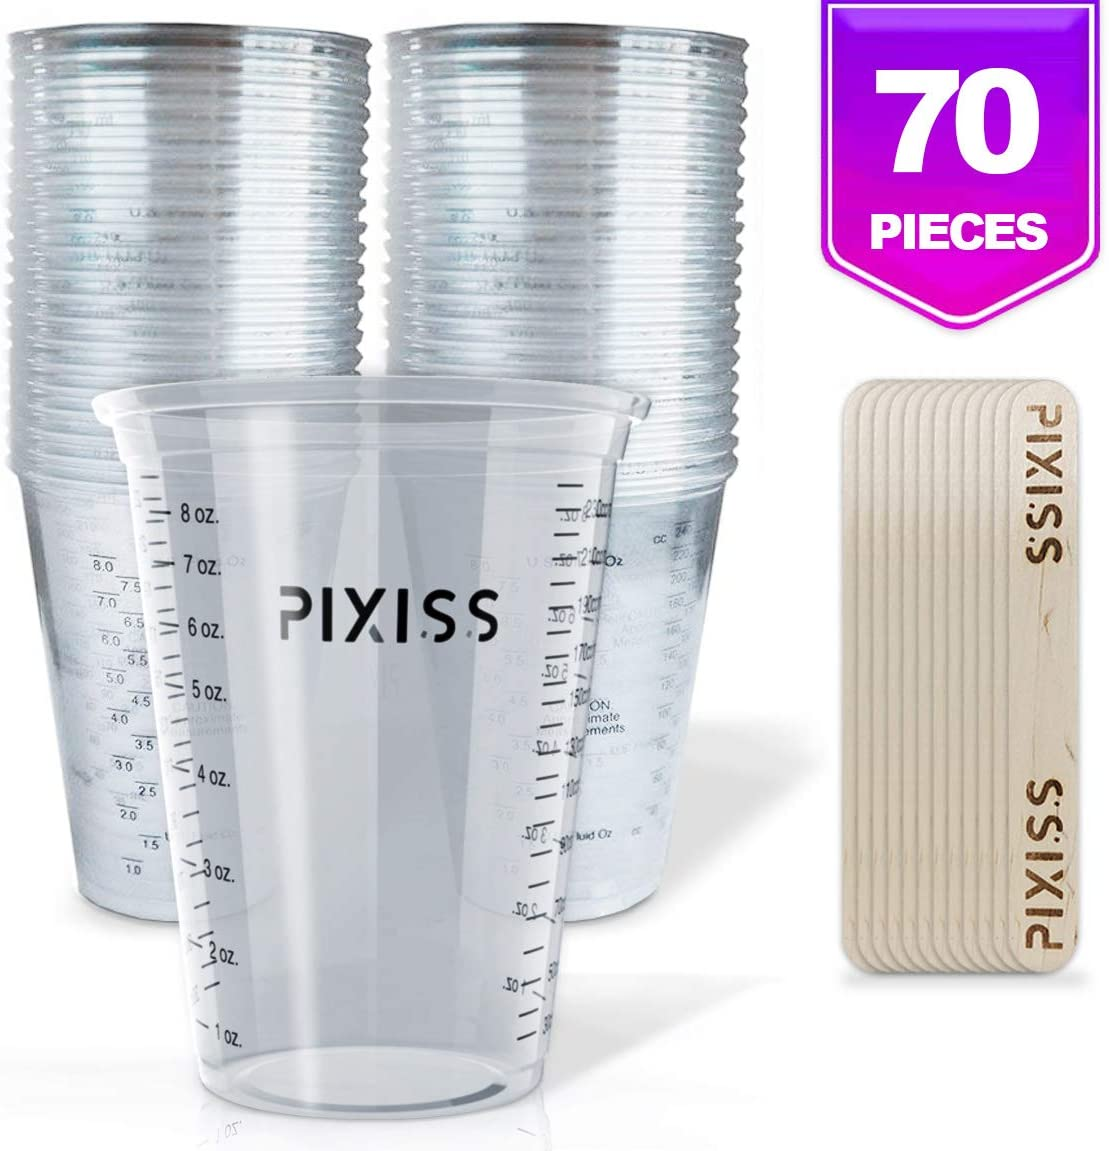 Disposable Epoxy Resin Mixing Cups Clear Plastic 10-Ounce 50-Pack For Measuring Paint Epoxy Resin Art Supplies - Graduated Measurements in ML and OZ